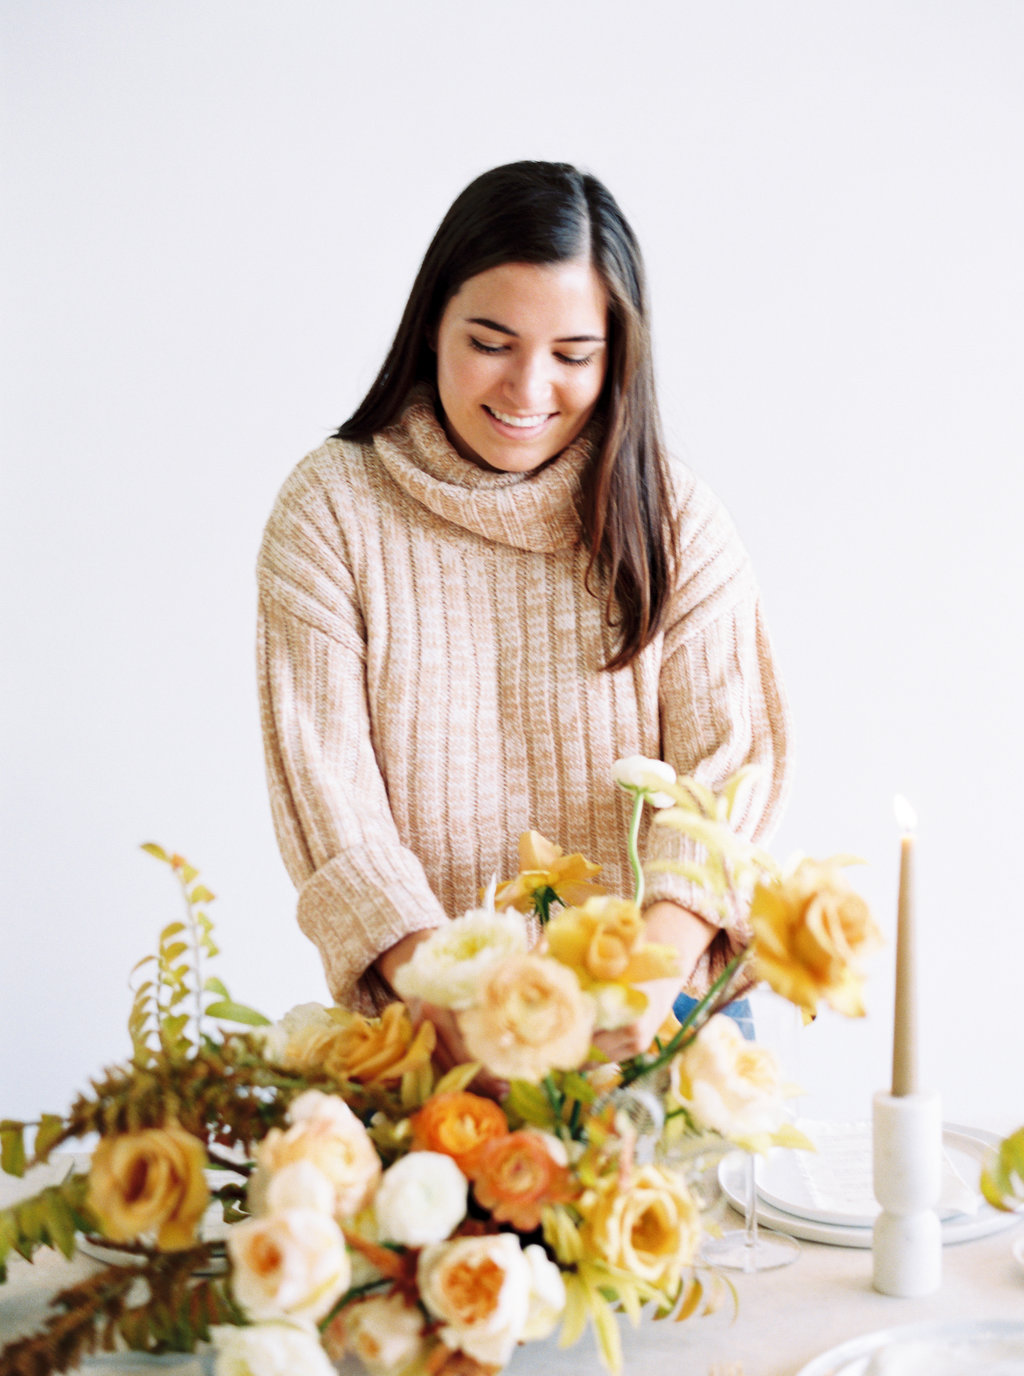 Thanksgivingstyledshoot068.JPG